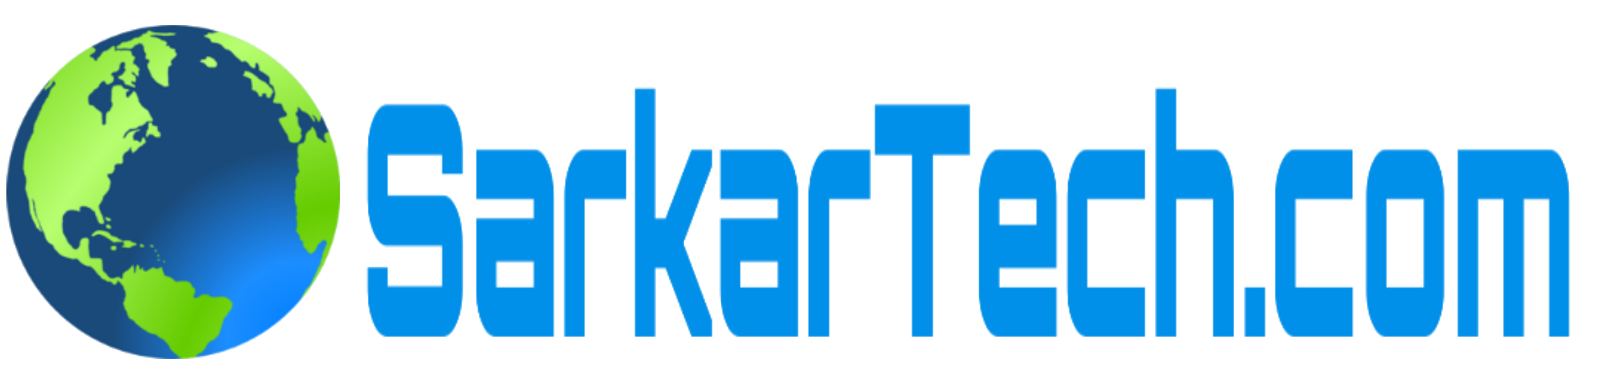 SarkarTech: Technology Advice, Product Reviews, Latest News